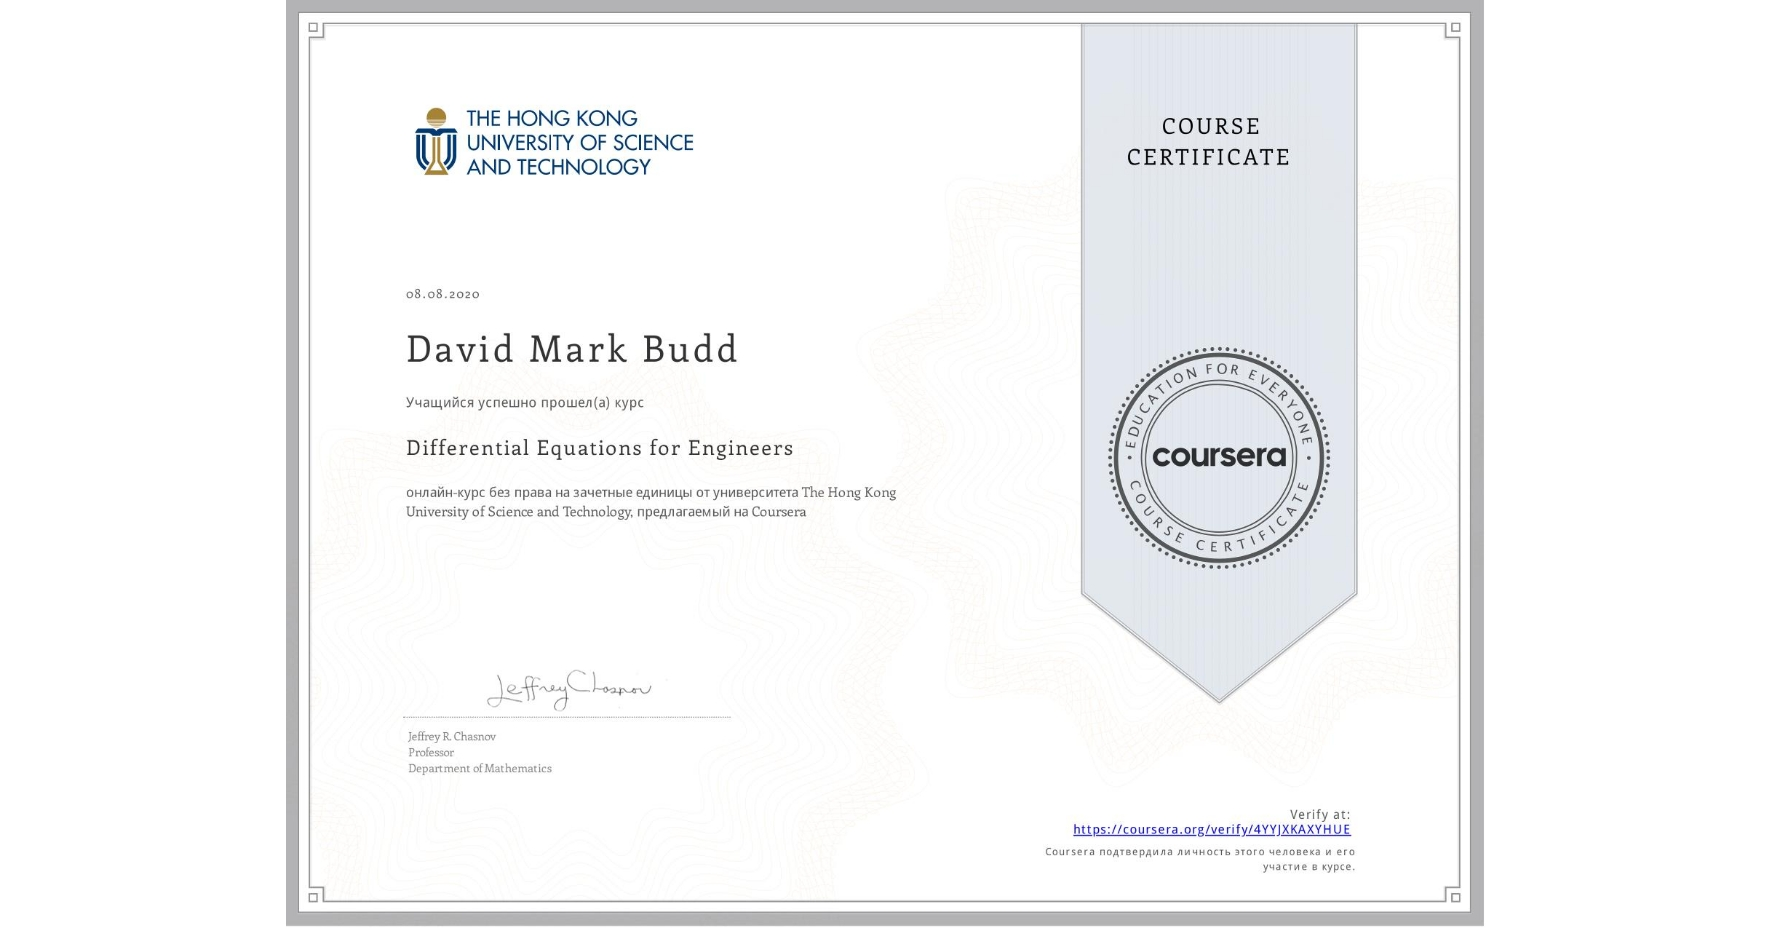 View certificate for David Mark Budd, Differential Equations for Engineers, an online non-credit course authorized by The Hong Kong University of Science and Technology and offered through Coursera